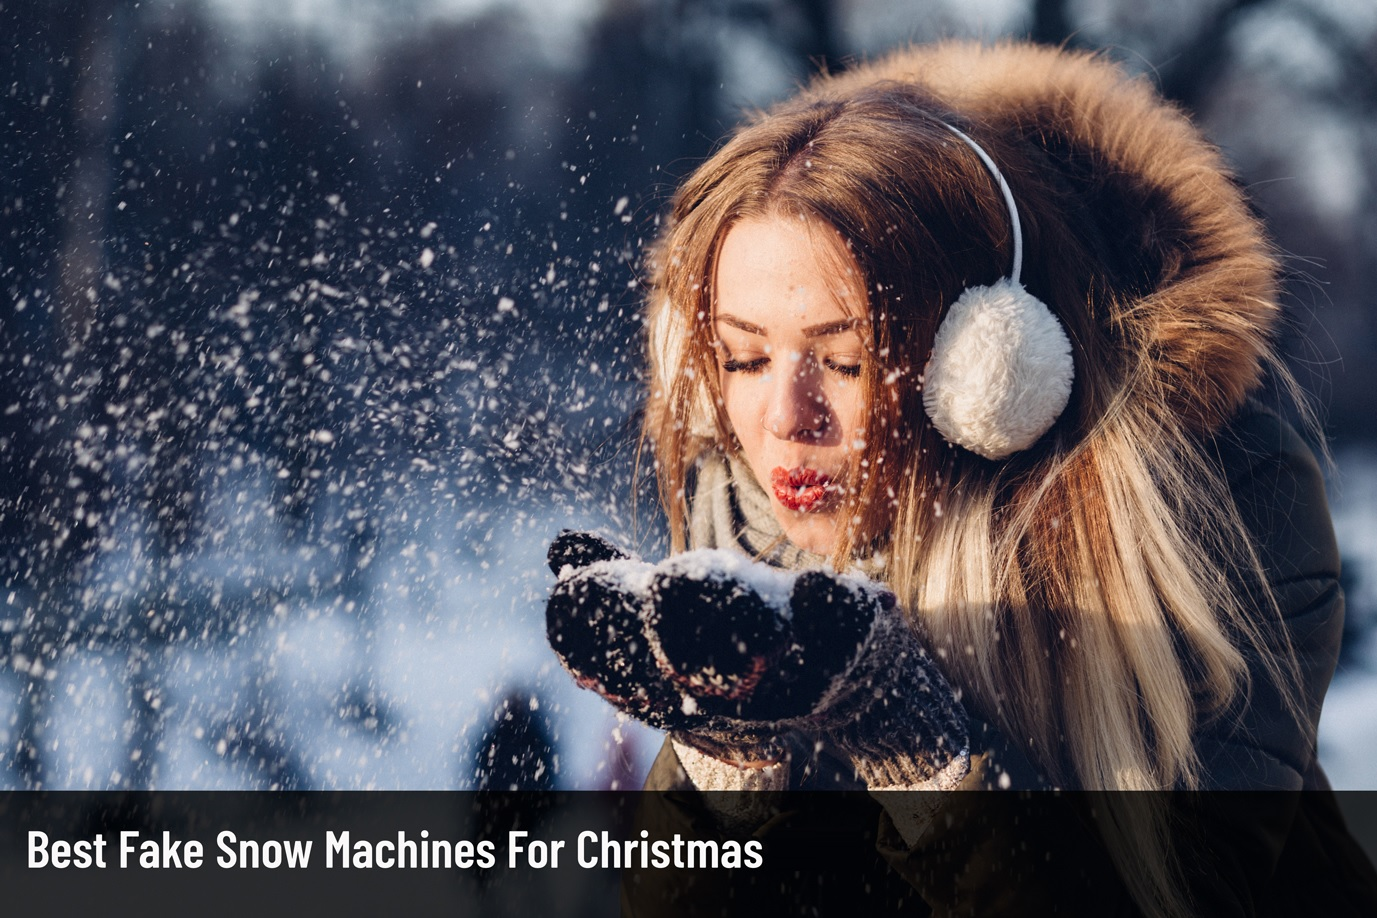 Best Fake Snow Machines For Christmas 2021